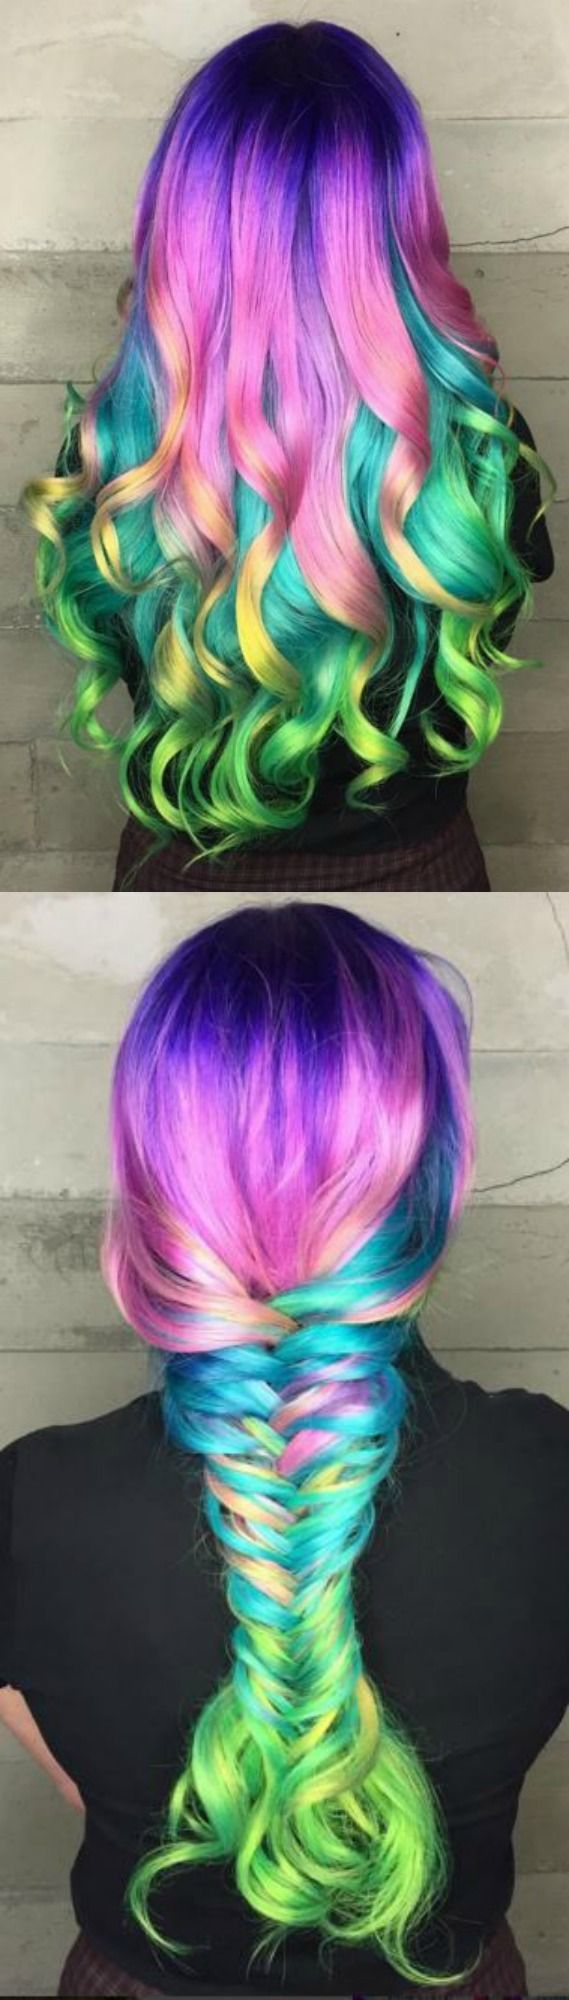 Collage Of Multi Colored Hair In Curls Big Braid Hairstyle